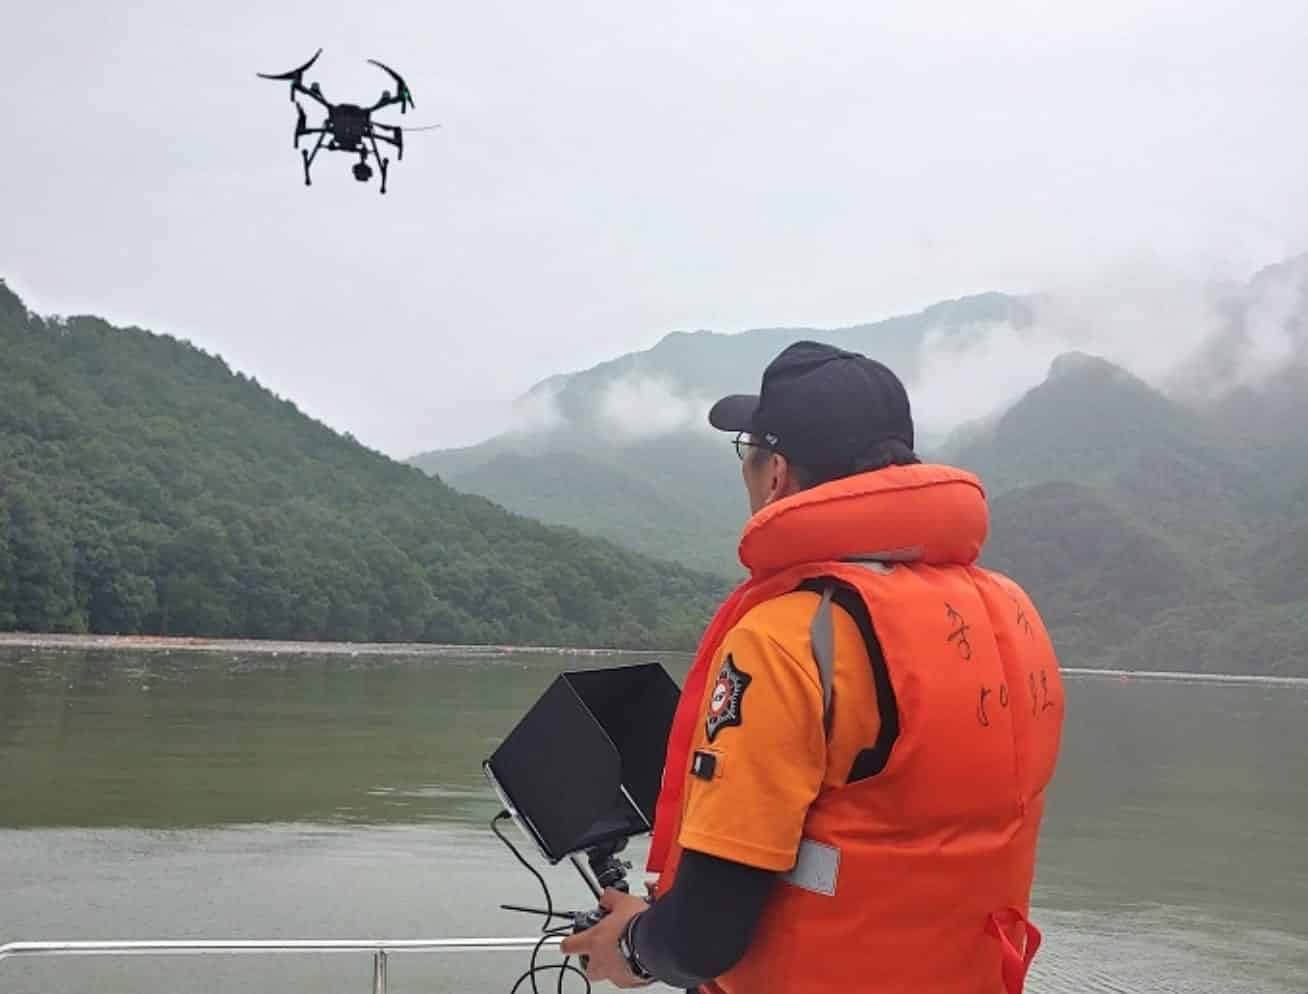 Drones prove invaluable during heavy flooding in South Korea